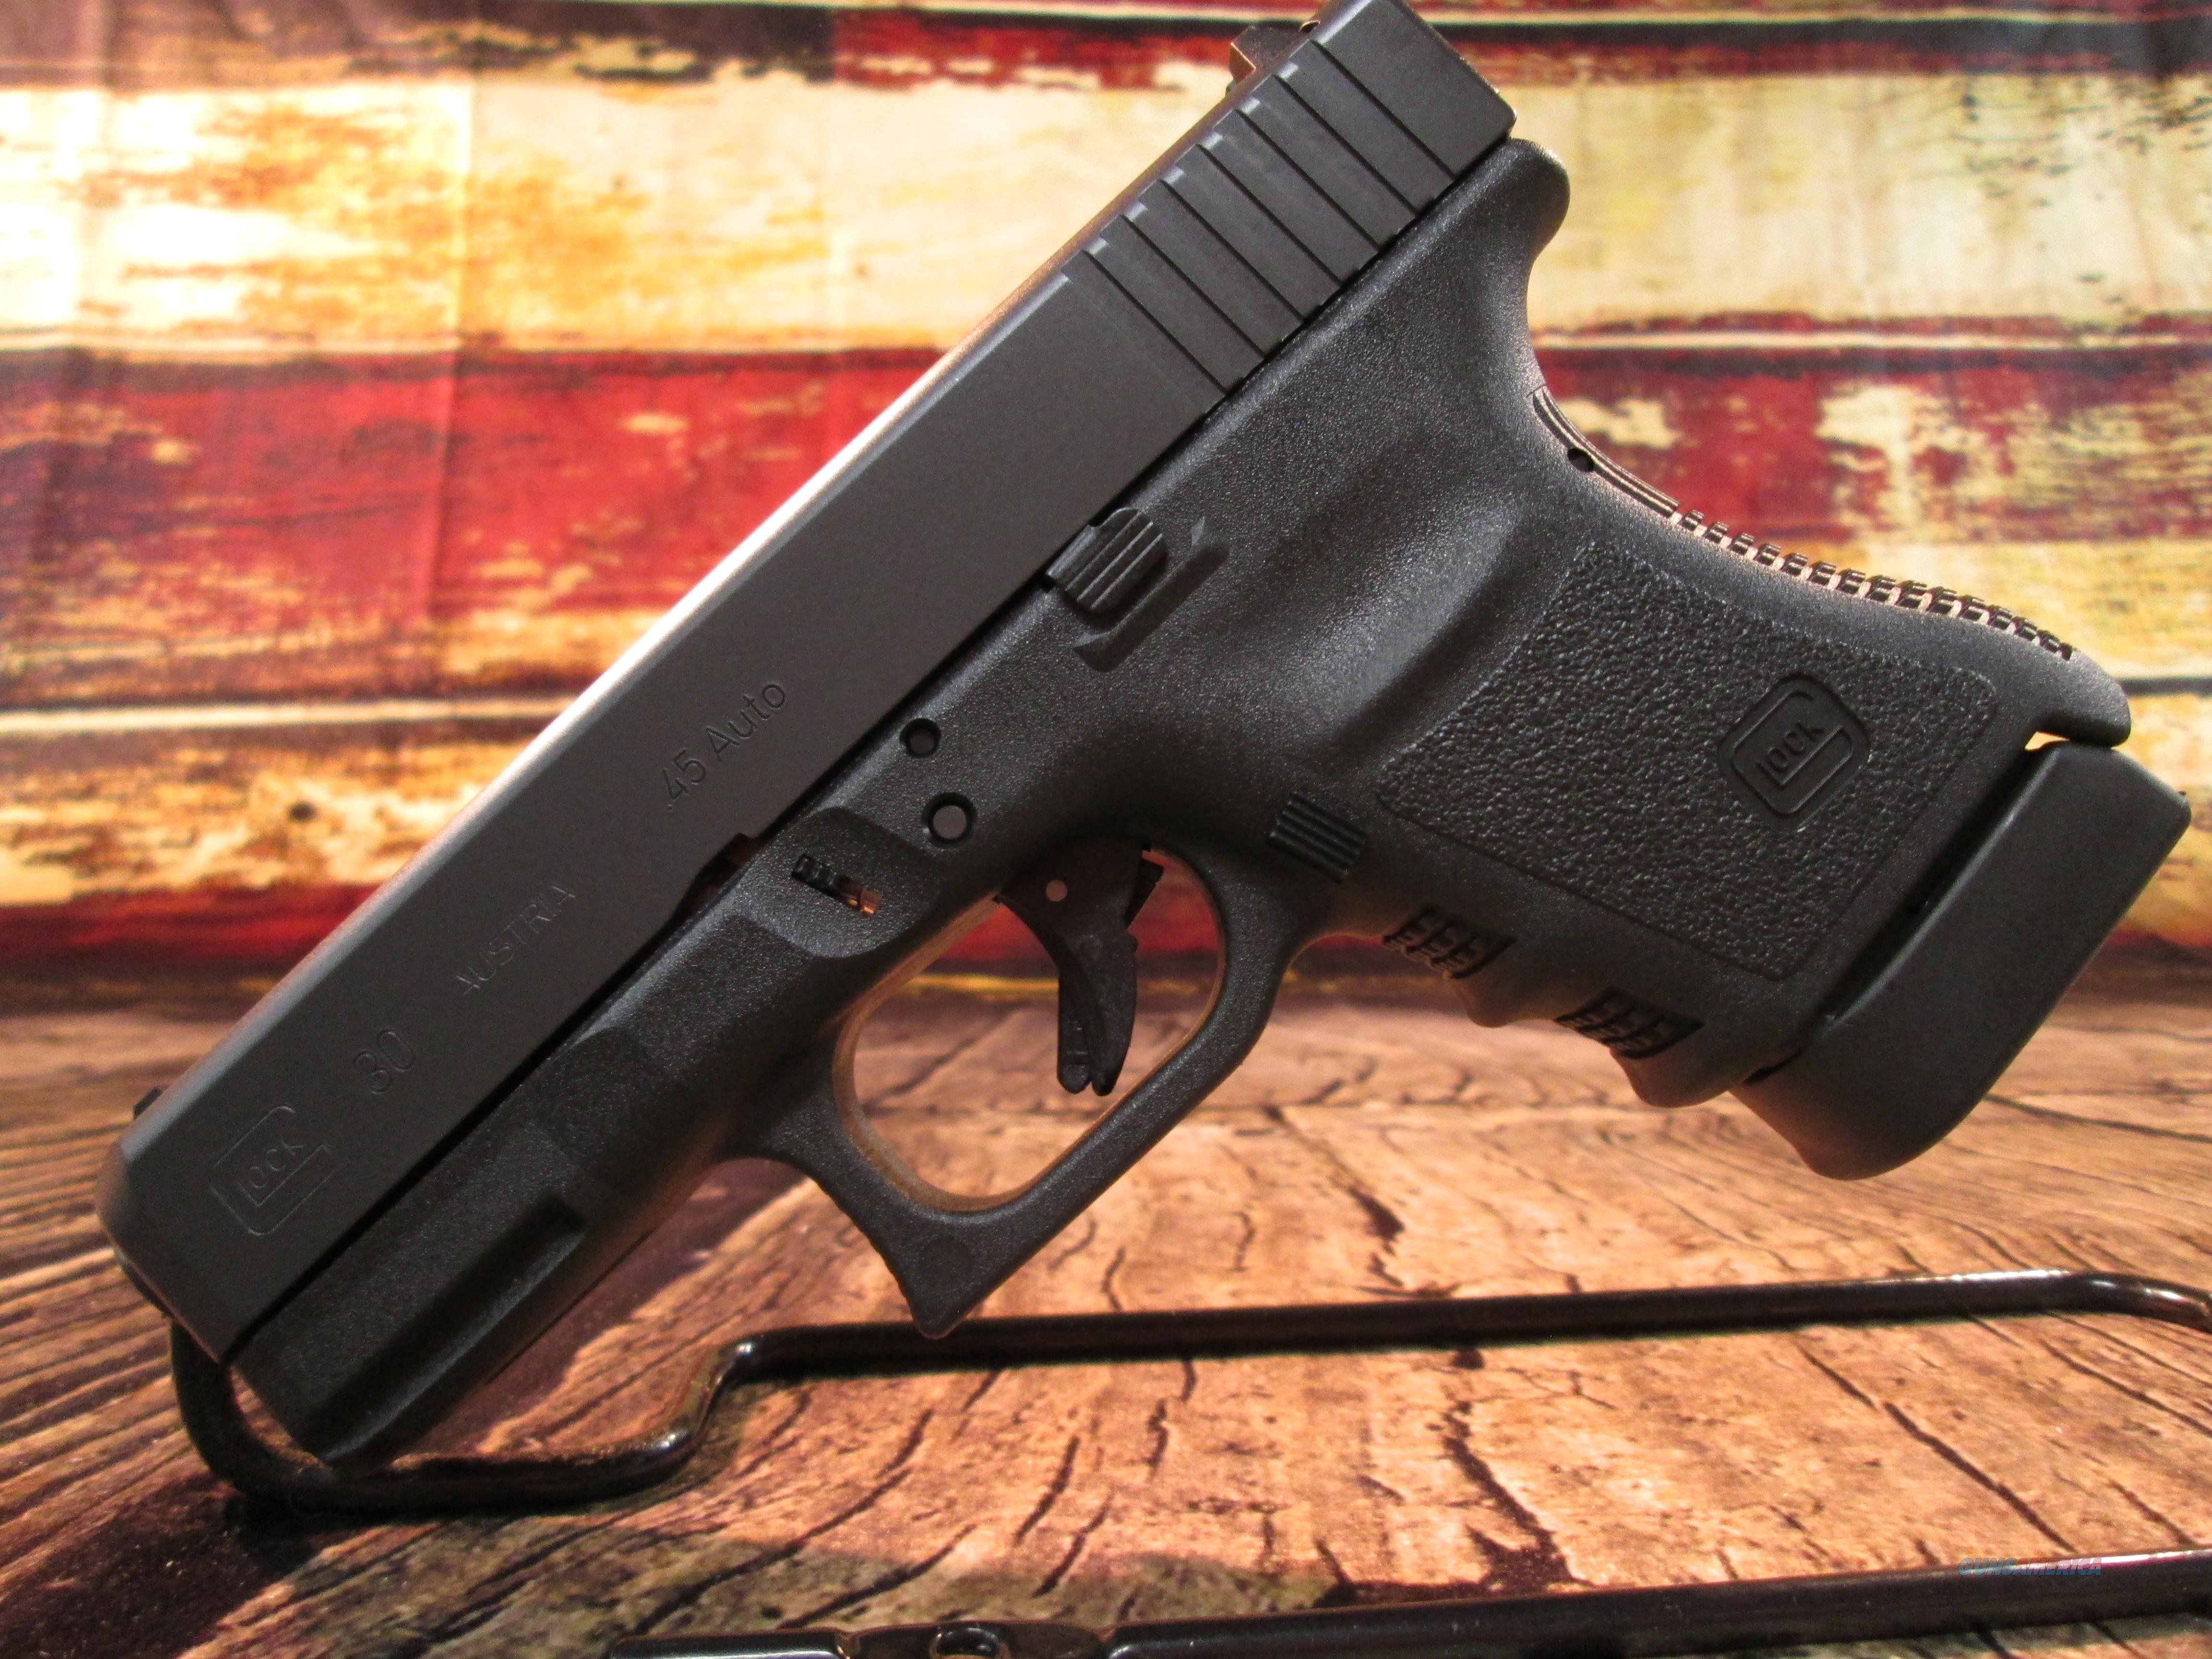 GLOCK MODEL 30SF (SLIM FRAME) 45ACP NEW (PF3050201)  Guns > Pistols > Glock Pistols > 29/30/36